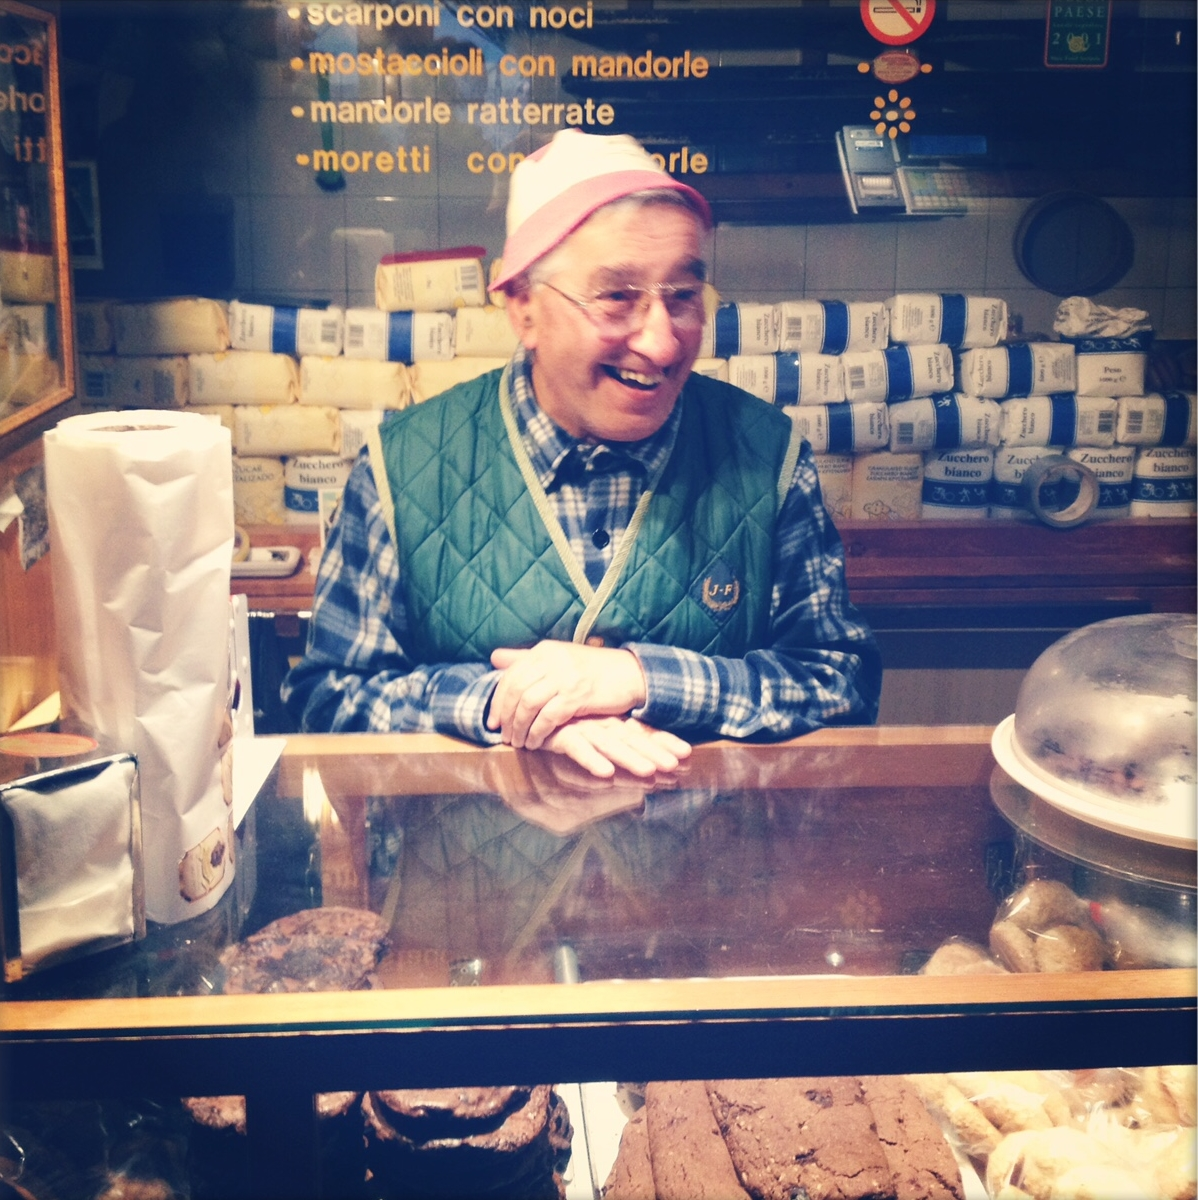 Cookie vendor, Scano, Abruzzo, on Morso Travel's food and wine tour.